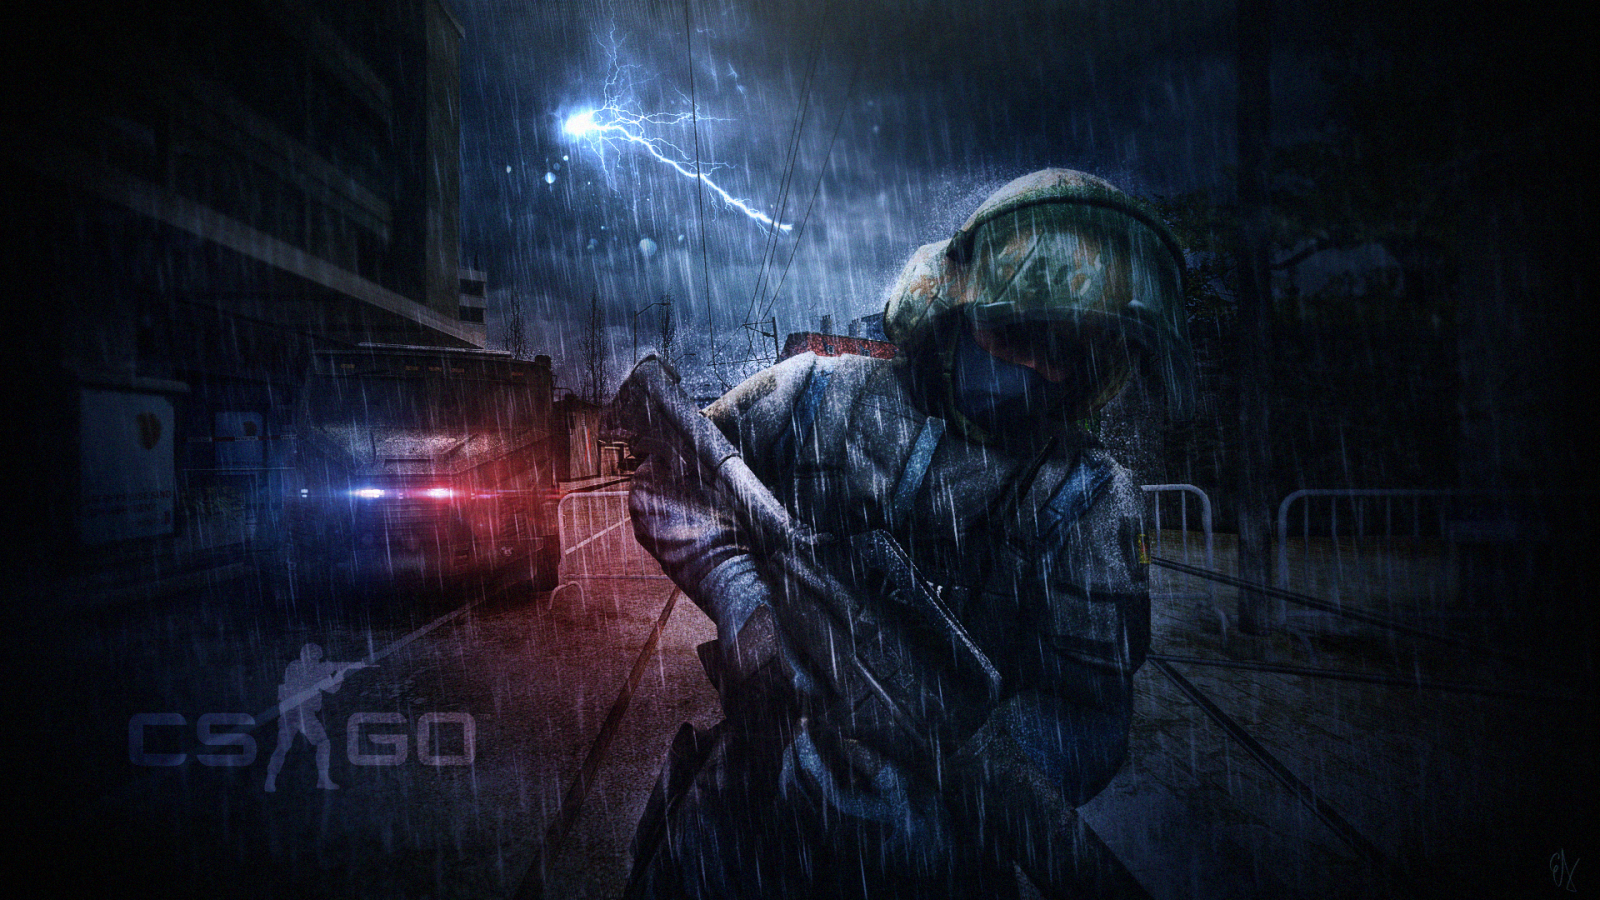 Download 1600x900 Counter Strike Global Offensive Csgo 1600x900